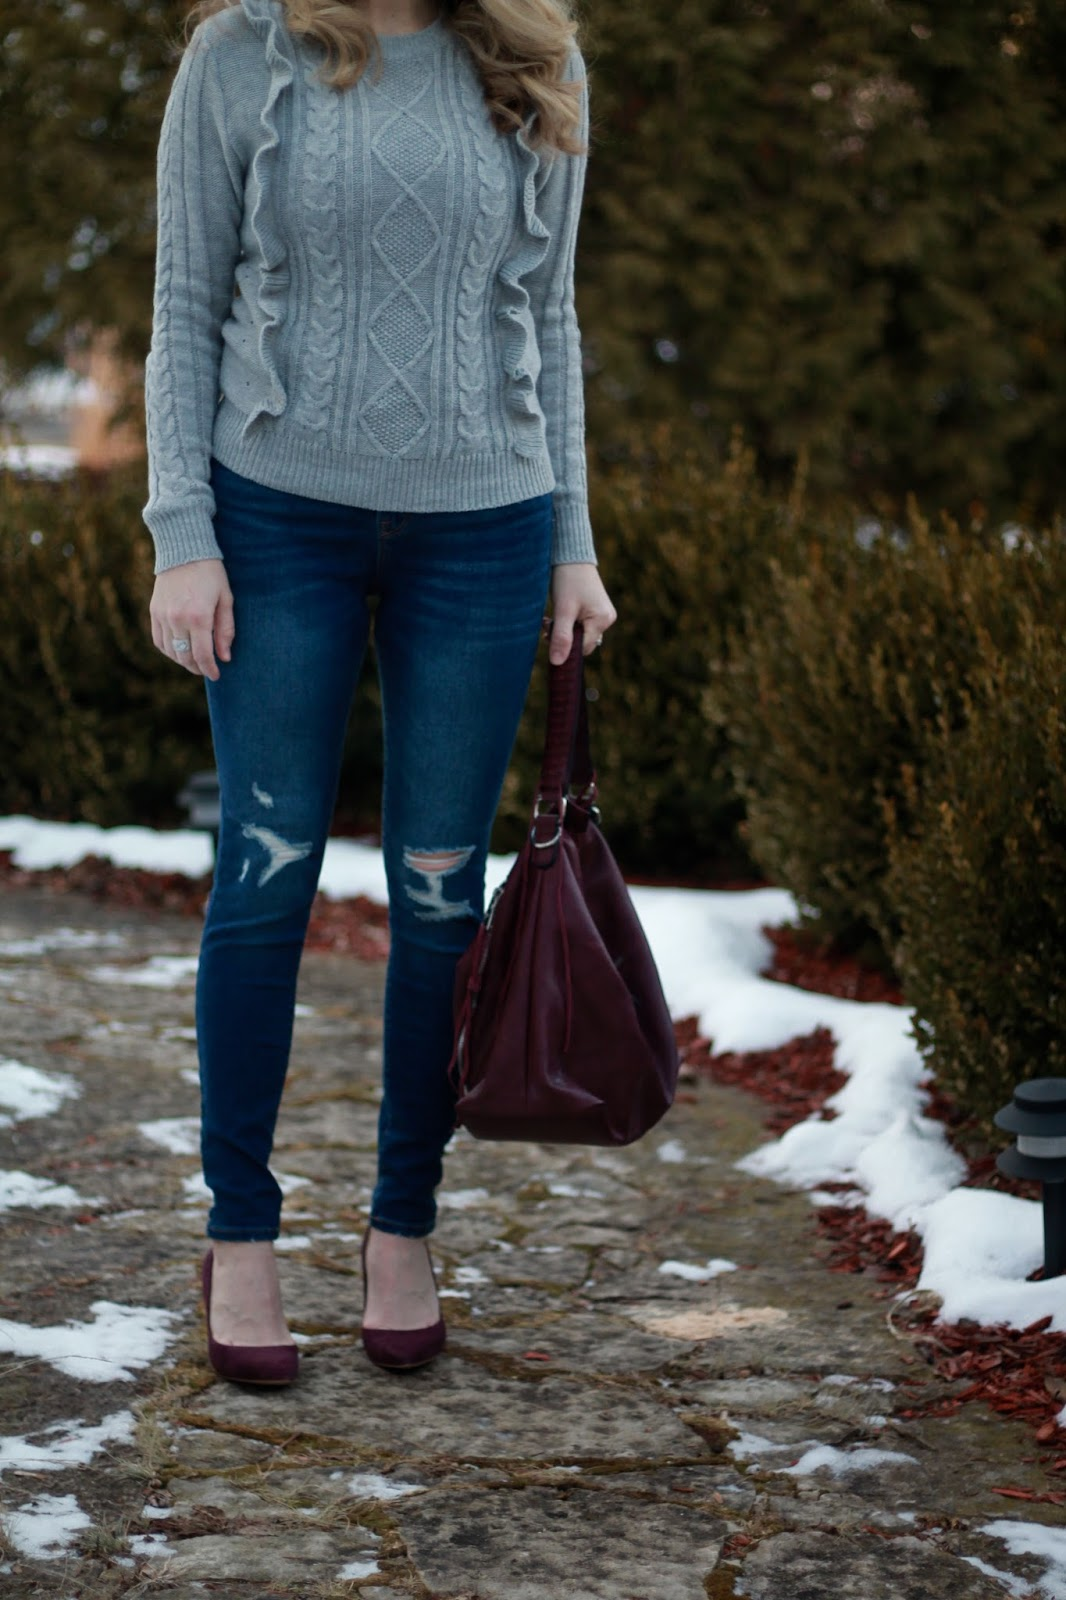 grey ruffle cable knit sweater, distressed rockstar jeans, burgundy hobo bag, burgundy heels, black tassel earrings